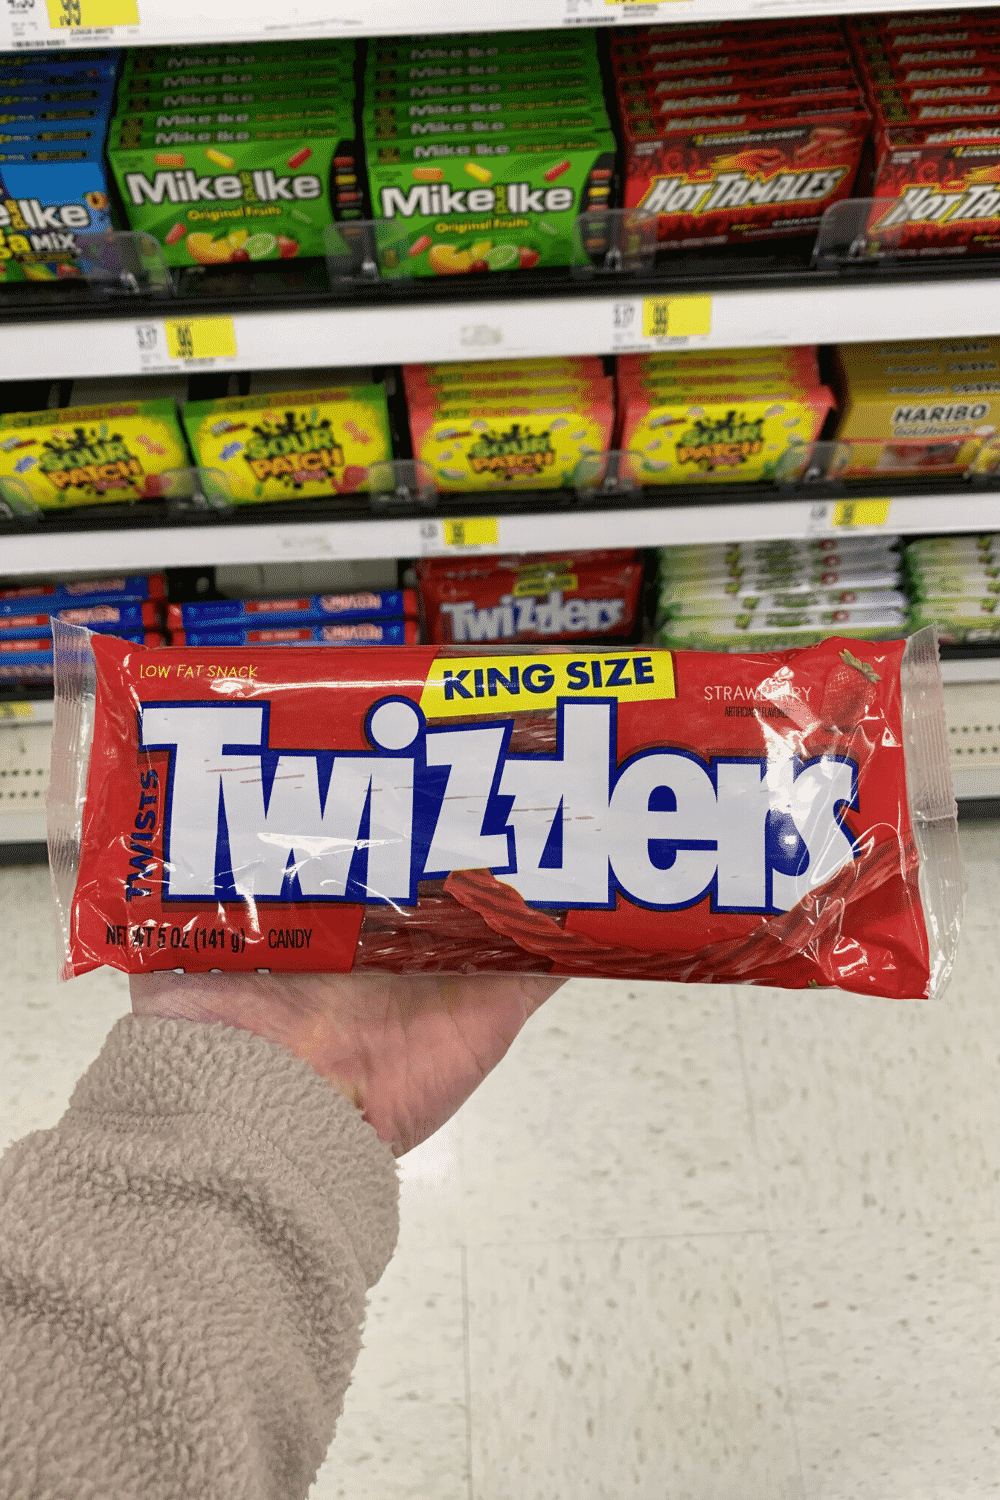 A hand holding a bag of Twizzlers